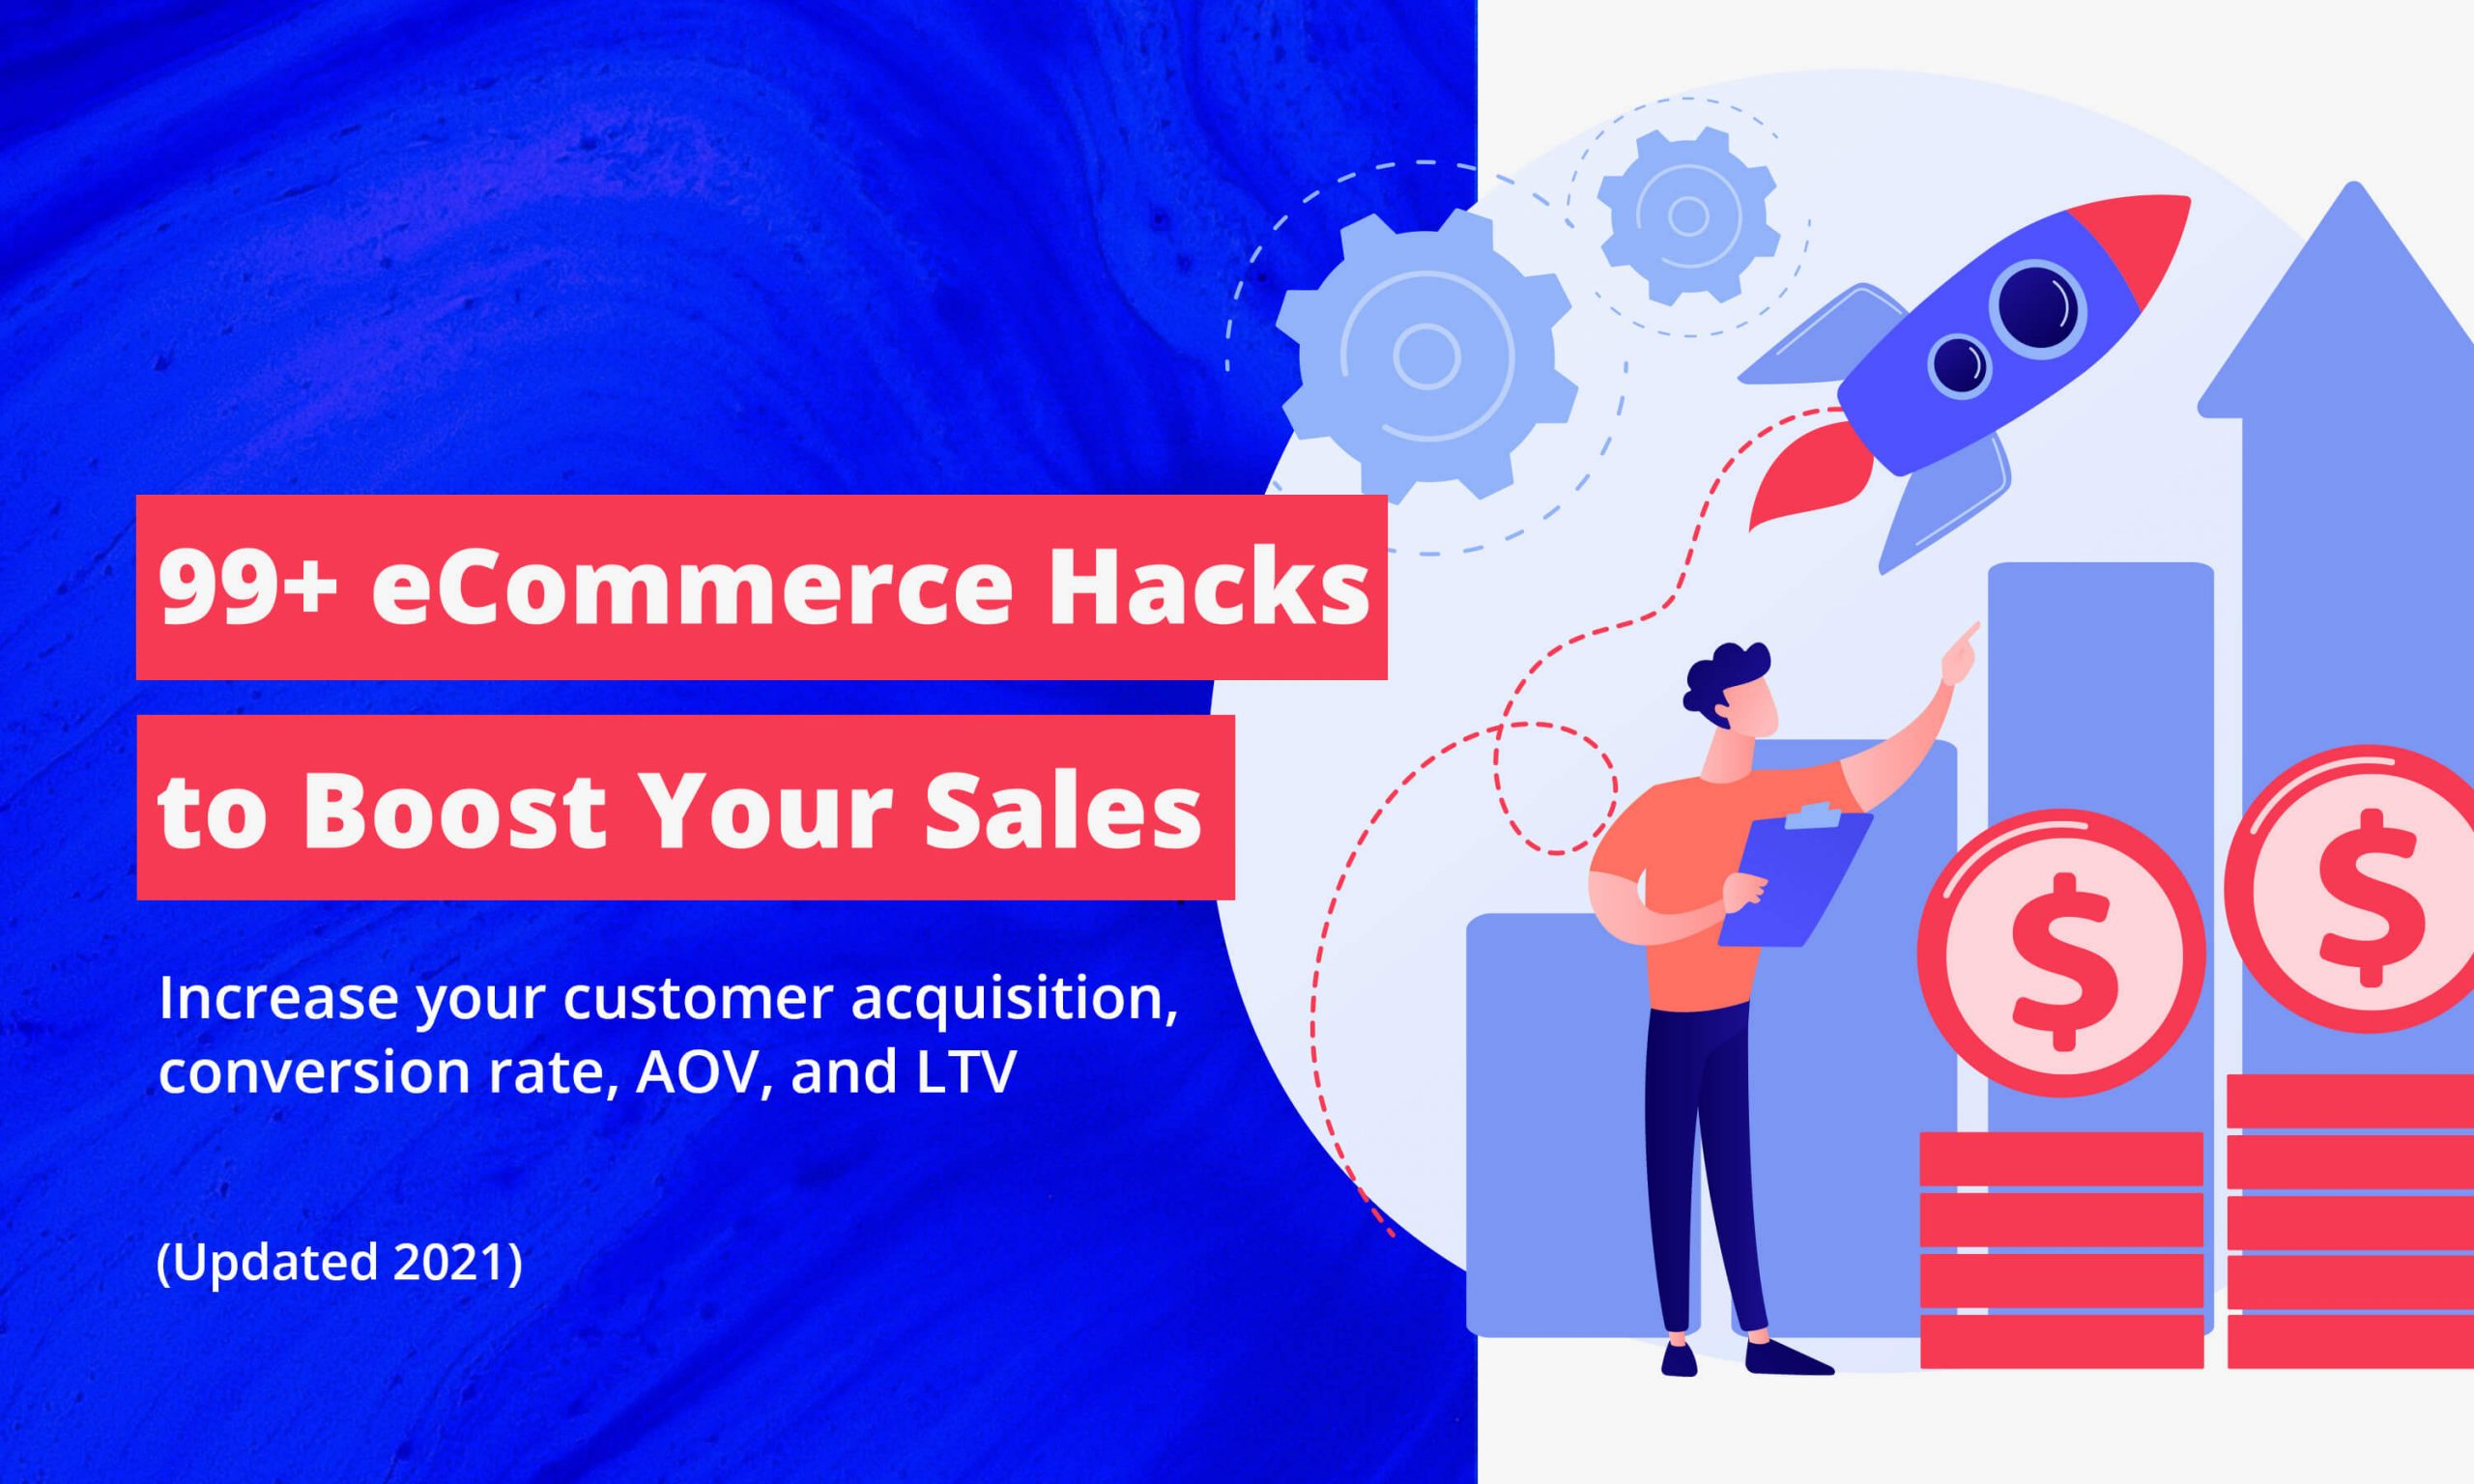 99+ eCommerce Hacks to Boost Your Sales (Updated 2021)